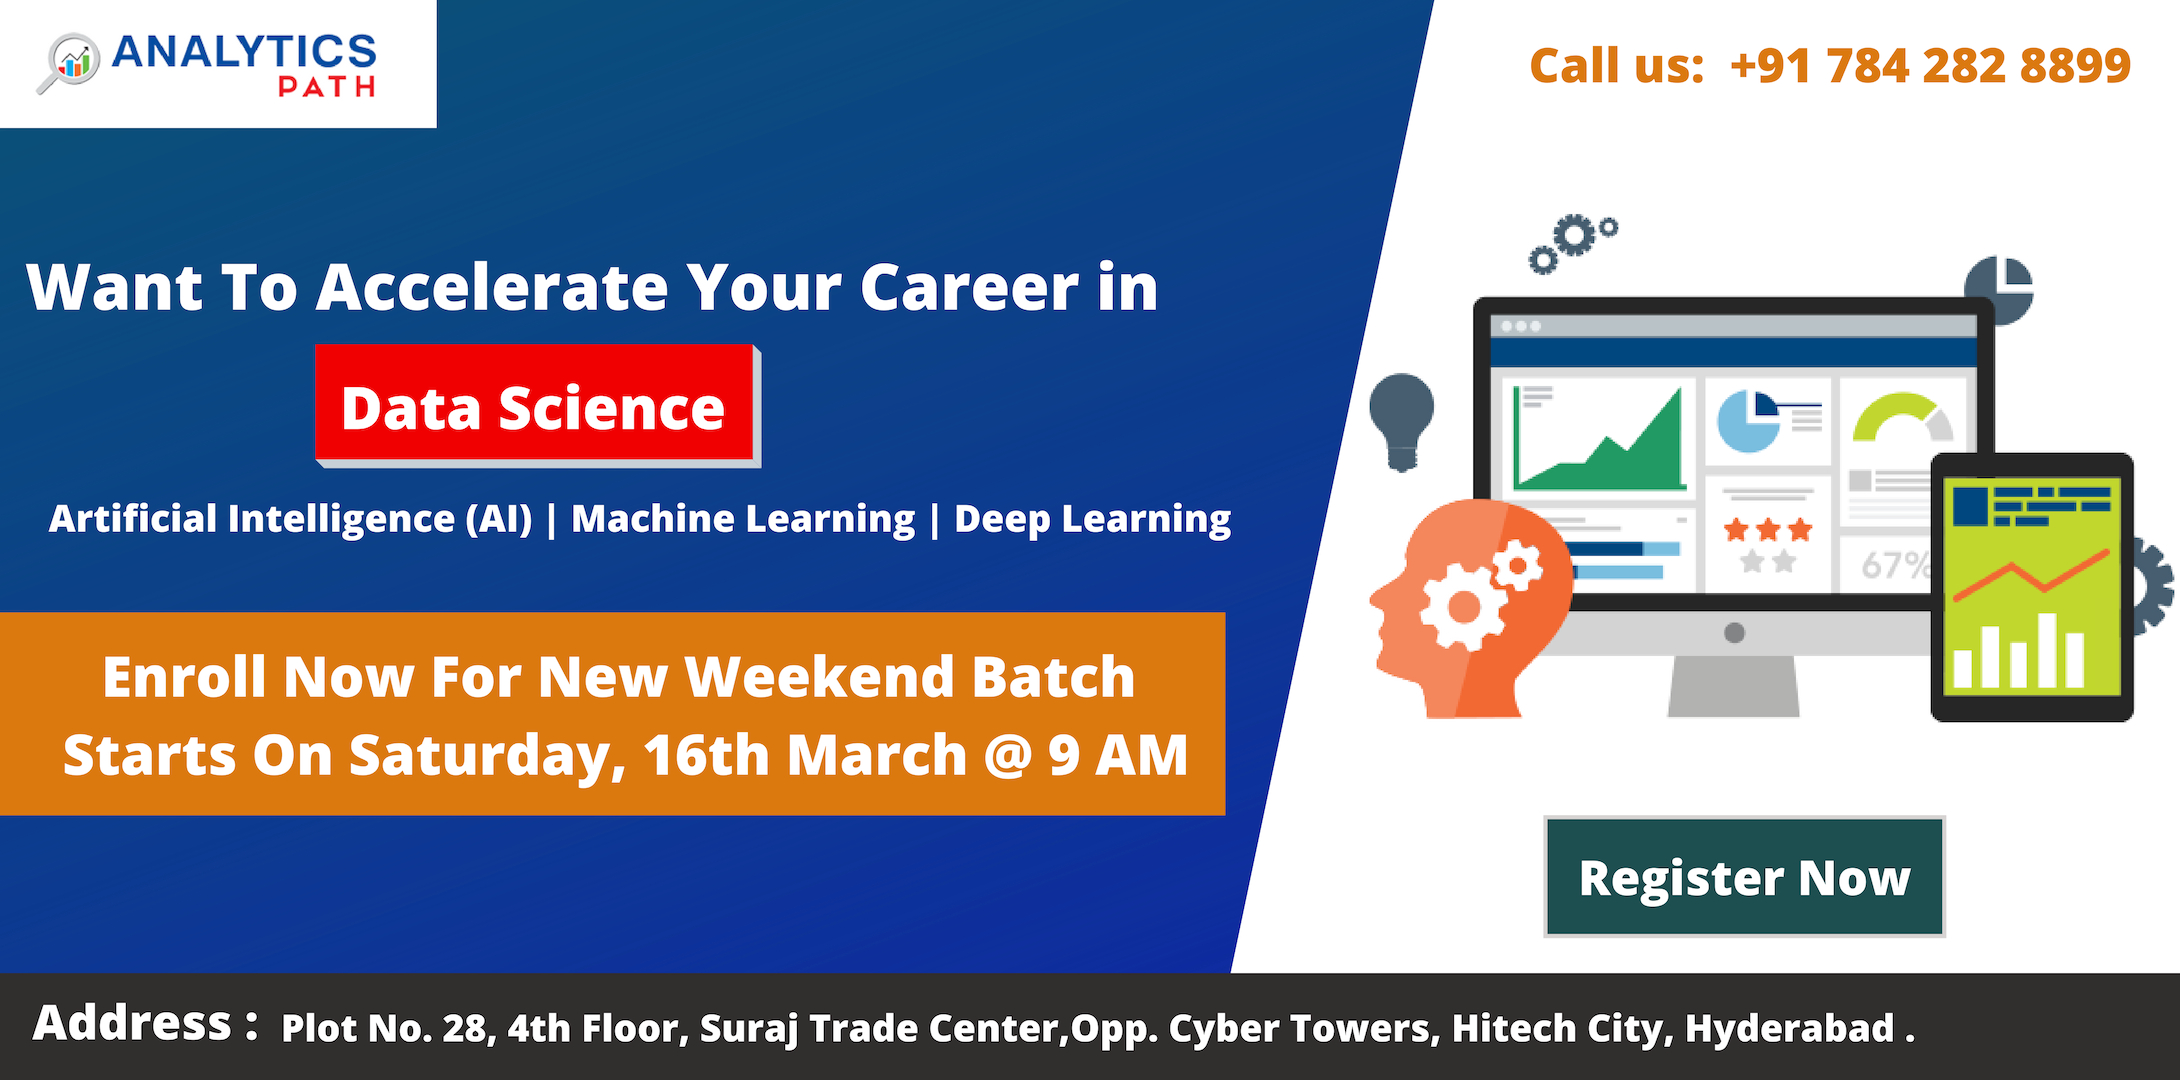 Enroll For Free Workshop Session On Data Science Training-Attended By Experts In Analytics Path Scheduled On 16th March, 9 AM, In Hyderabad, Hyderabad, Telangana, India